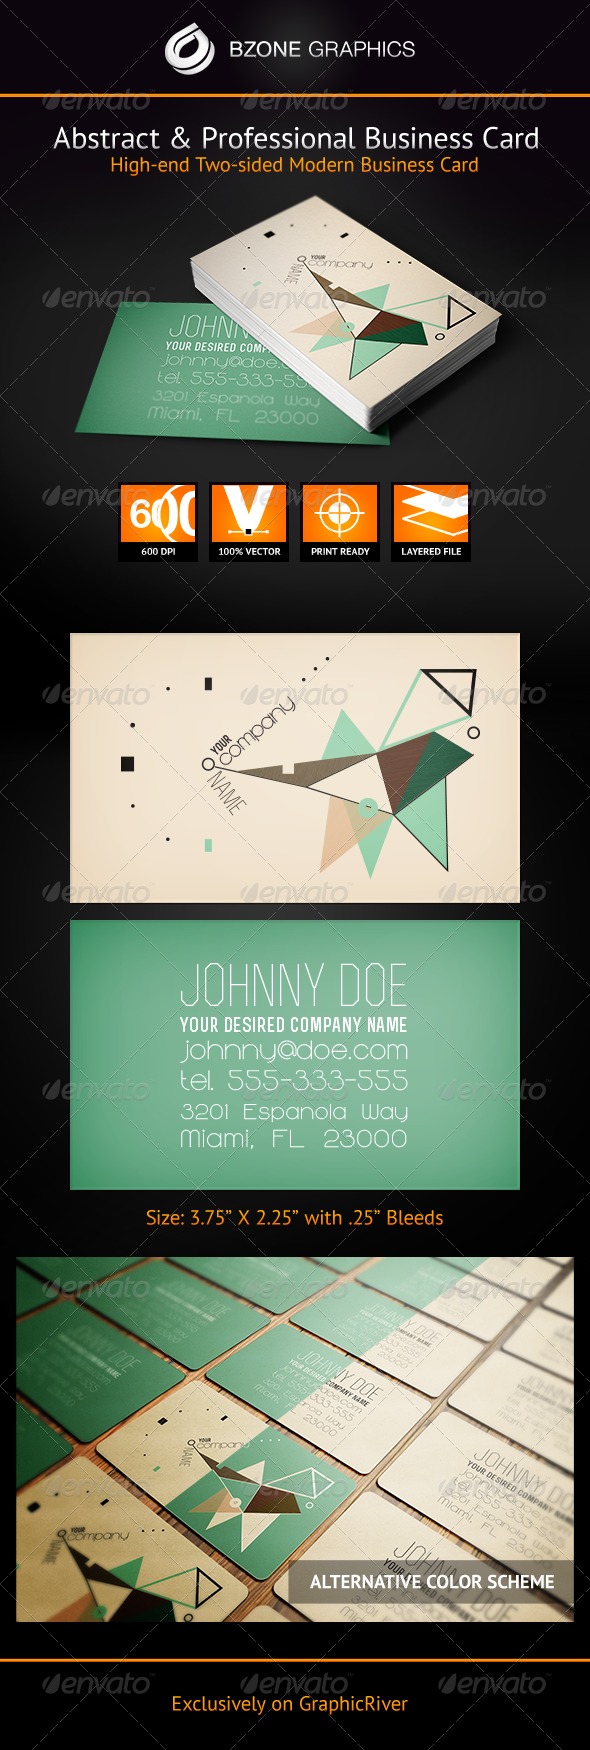 Abstract & Professional Business Card - Creative Business Cards